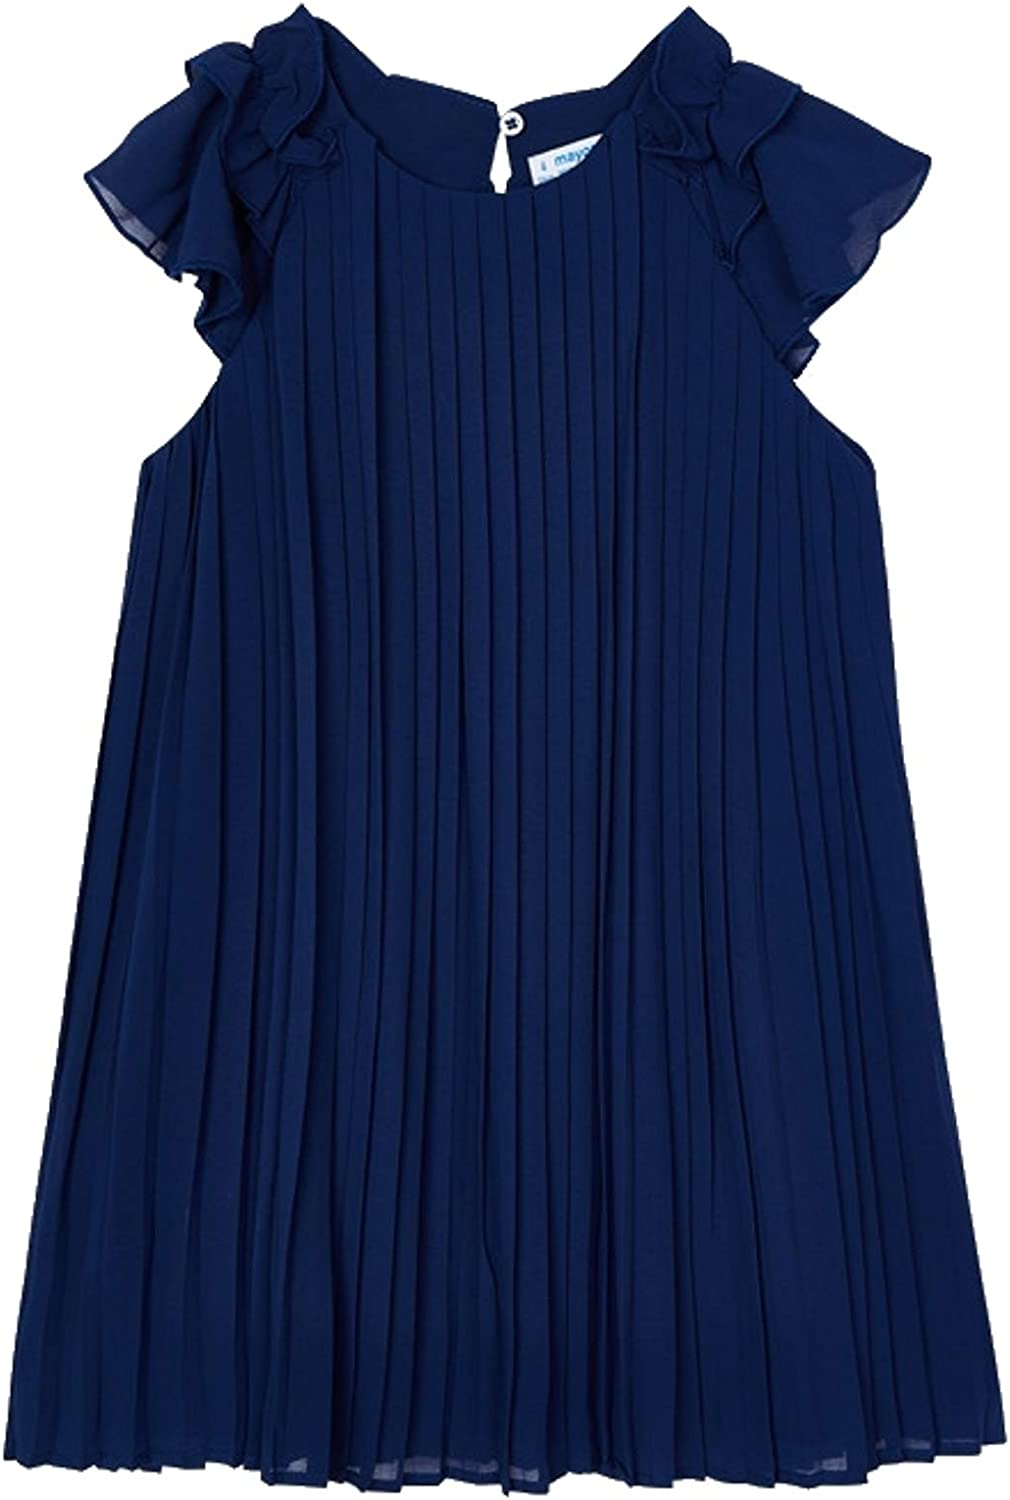 Mayoral - Pleated Dress for Girls - 3911, Ink